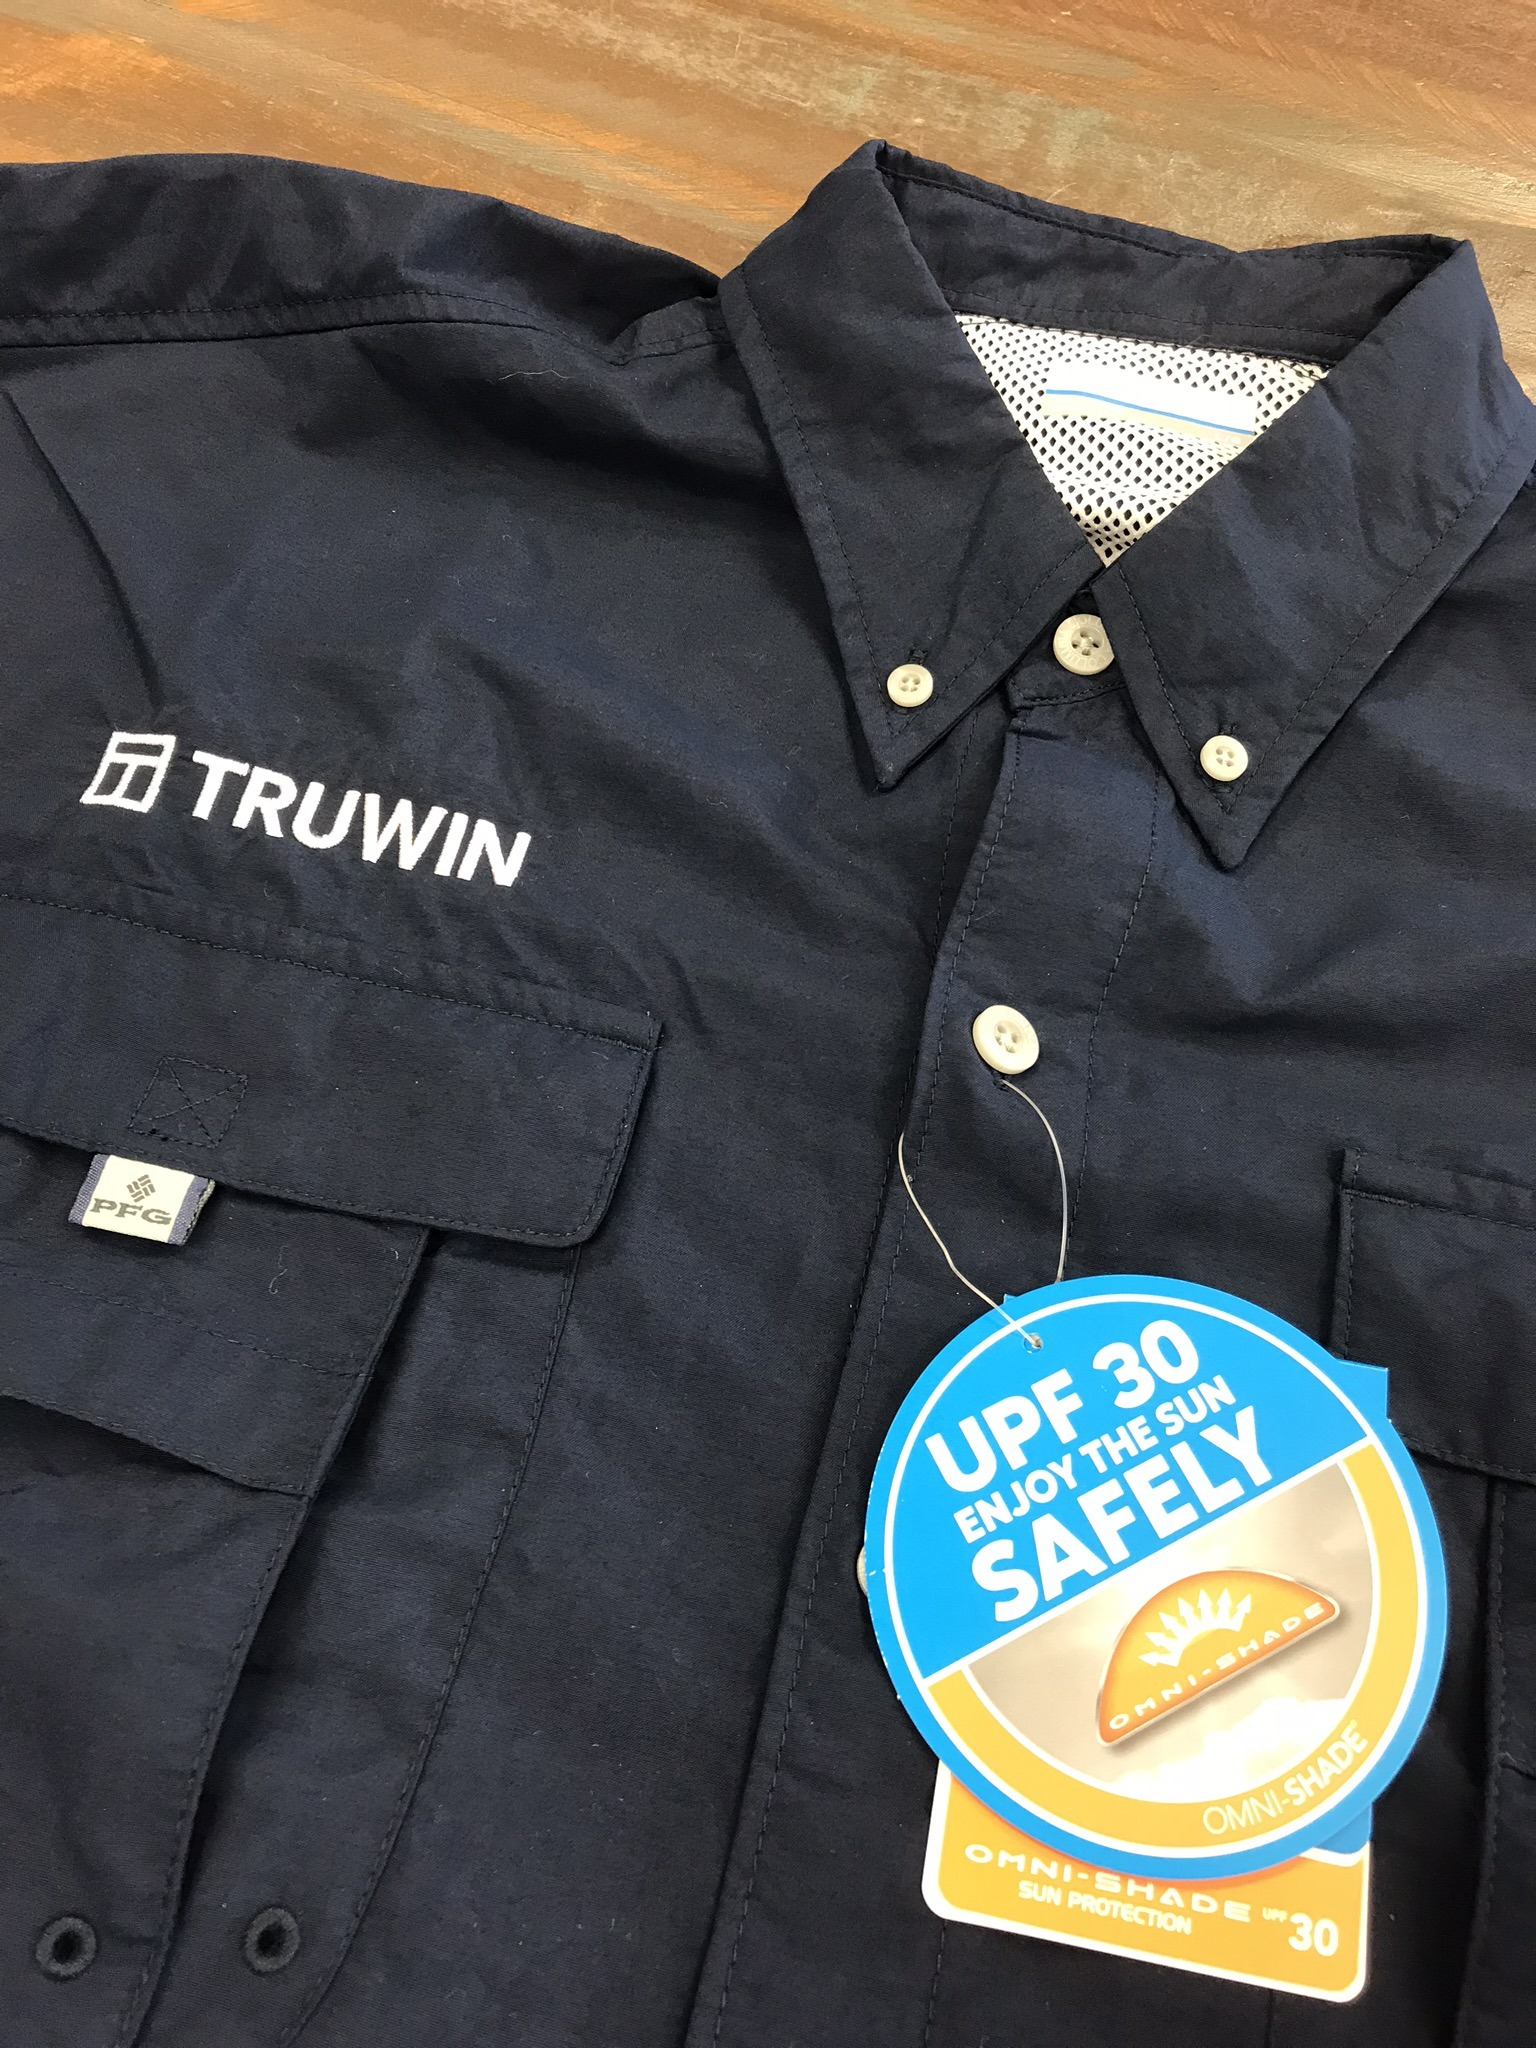 Branded uniform shirts are a great way to market your team to the masses.